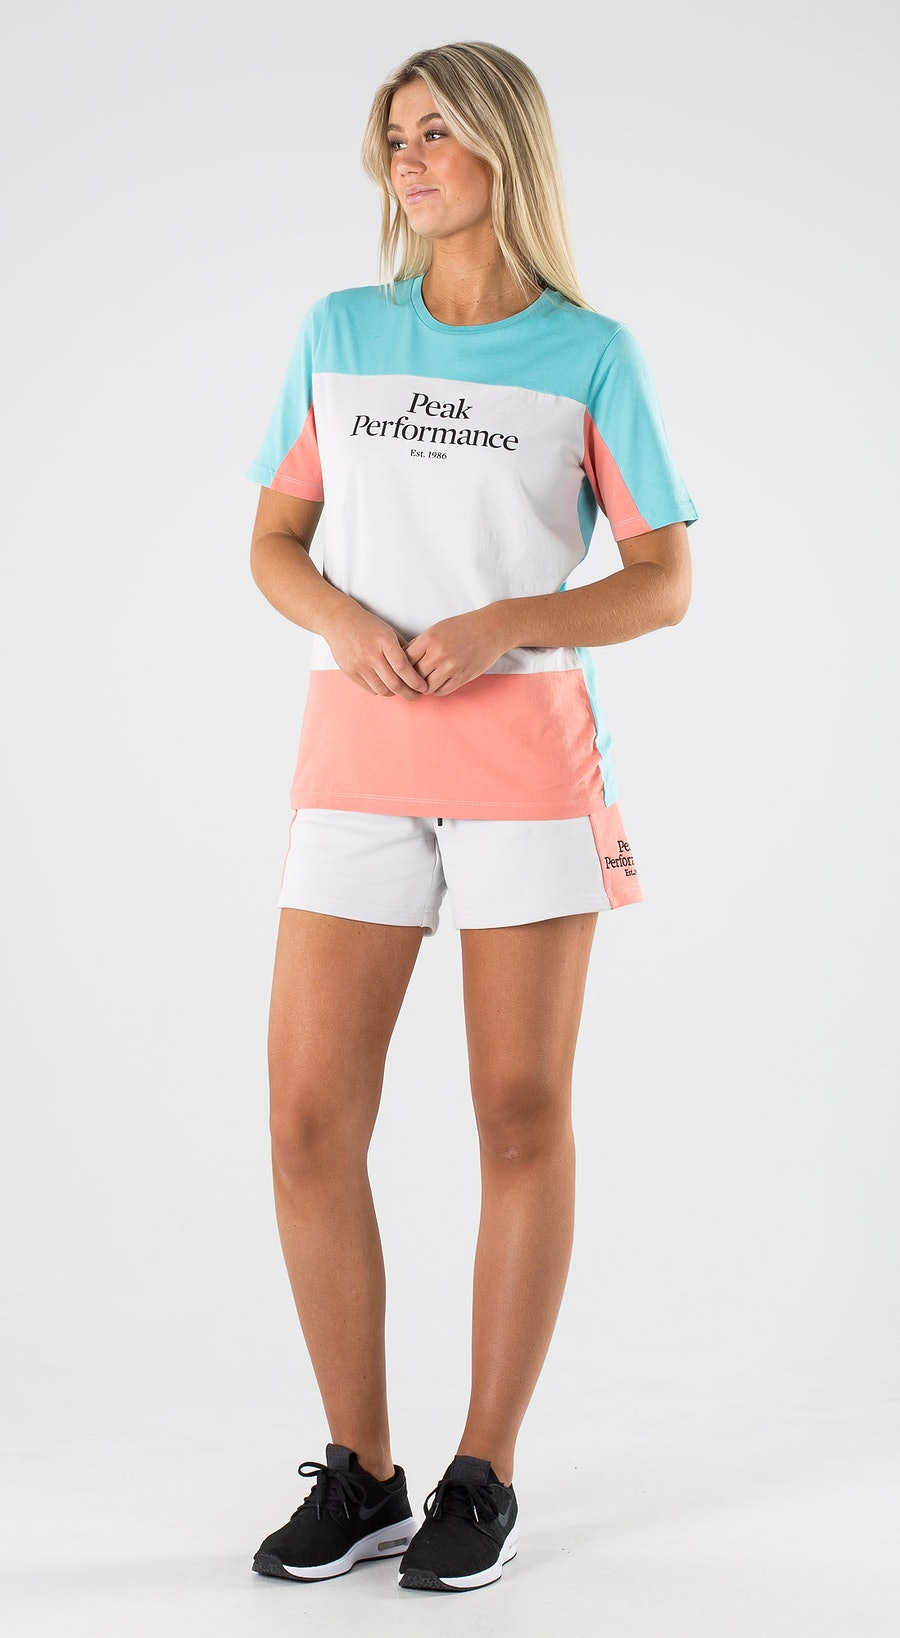 Peak Performance Original Blocked Tee Antarctica Outfit Multi